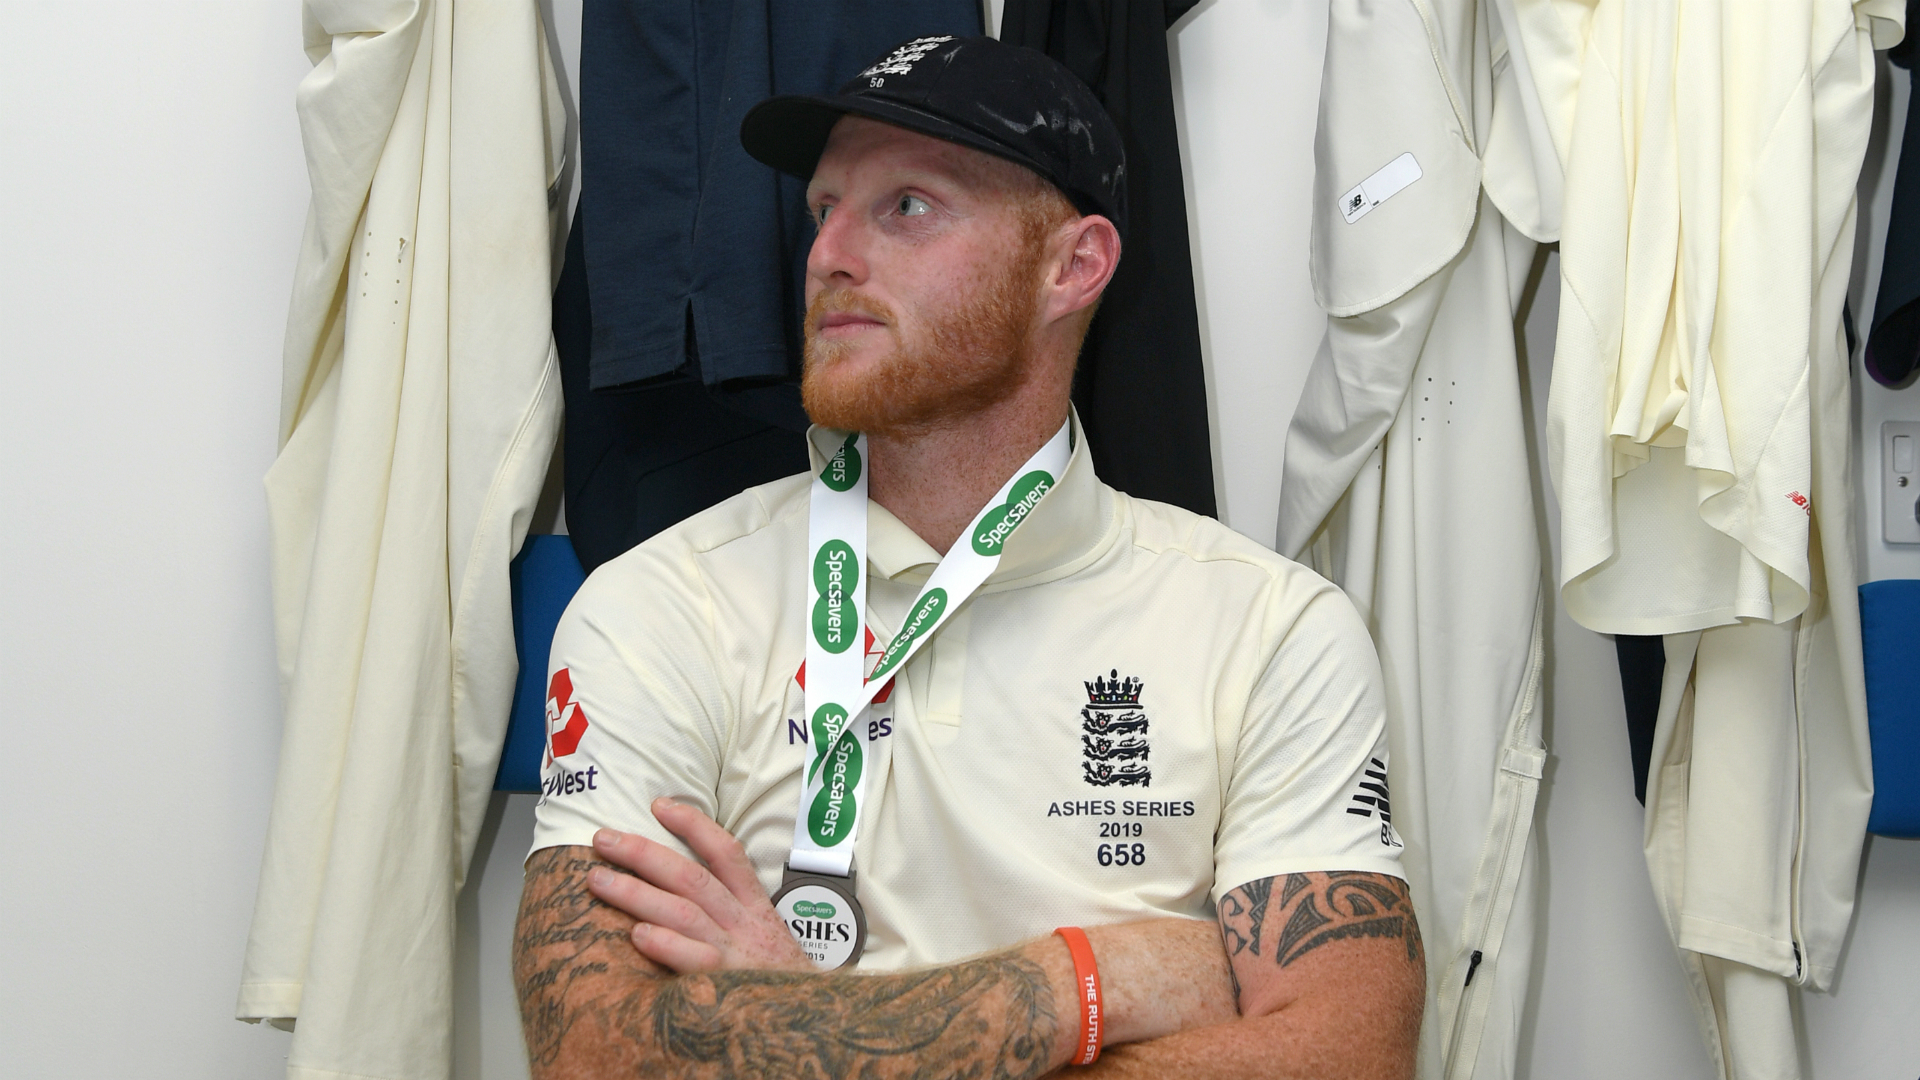 England star Stokes brands reporting of family tragedy 'immoral' and 'heartless'